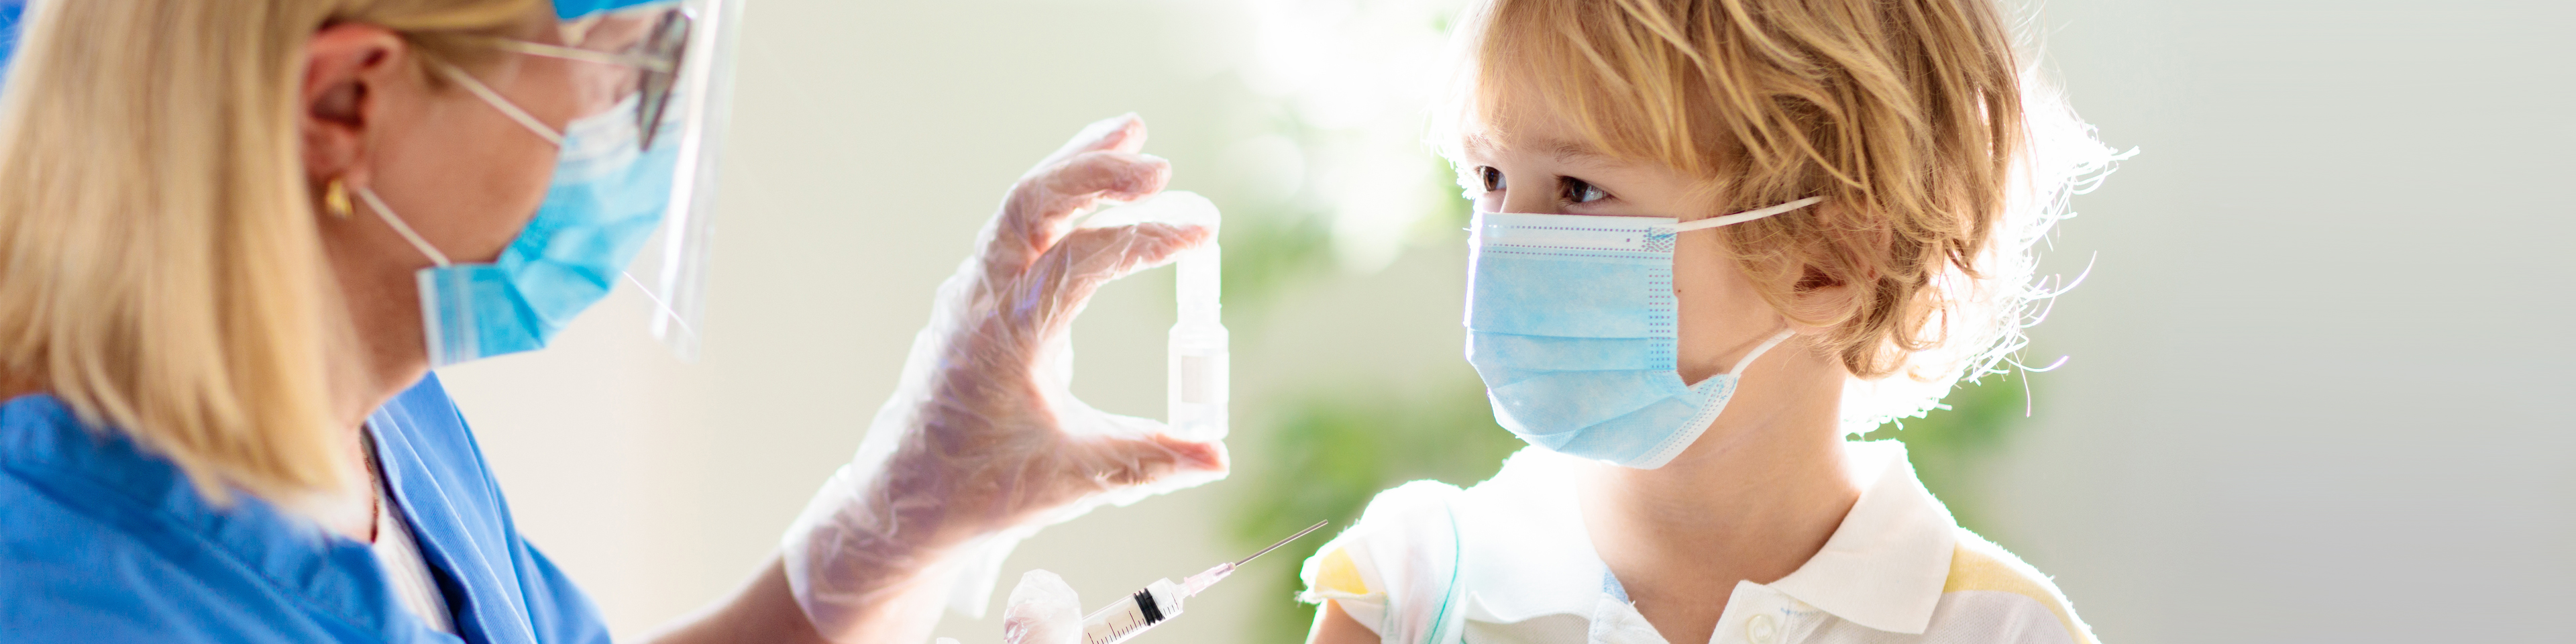 Mask and face shield wearing nurse getting ready to give mask wearing child a vaccination shot